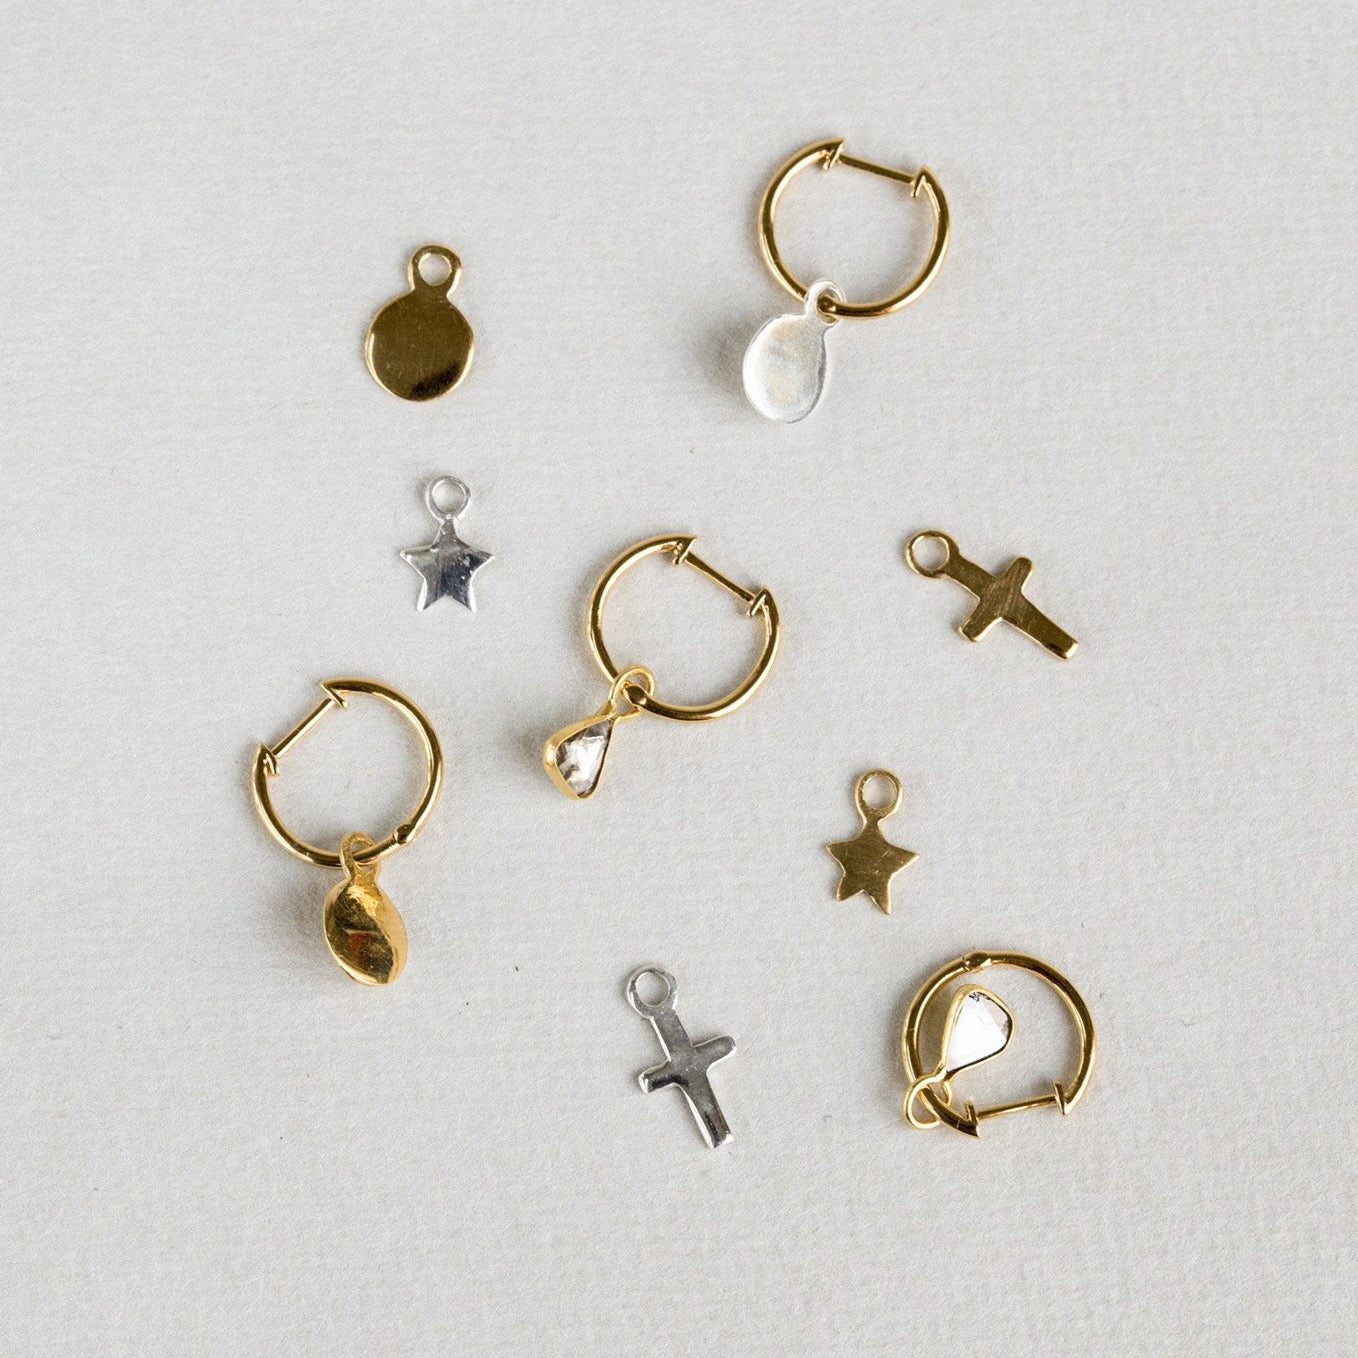 Individual Earring Charms